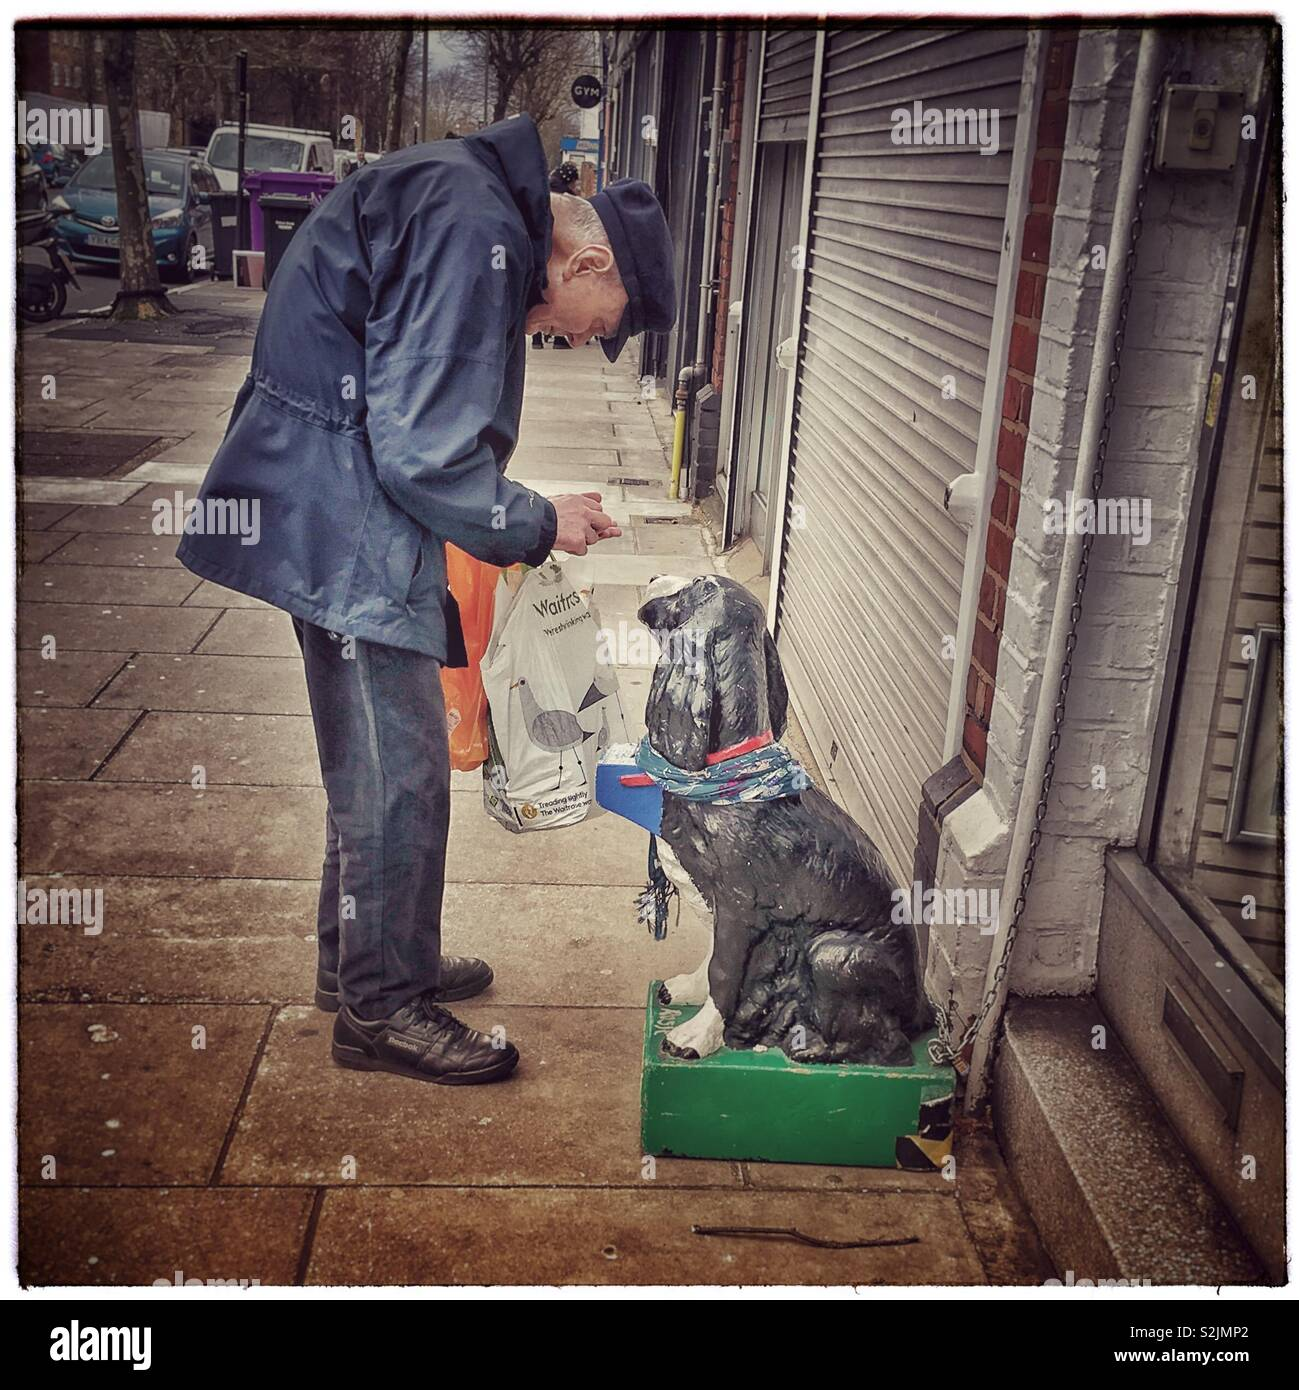 Old man finding change for the RSPCA collection box. - Stock Image